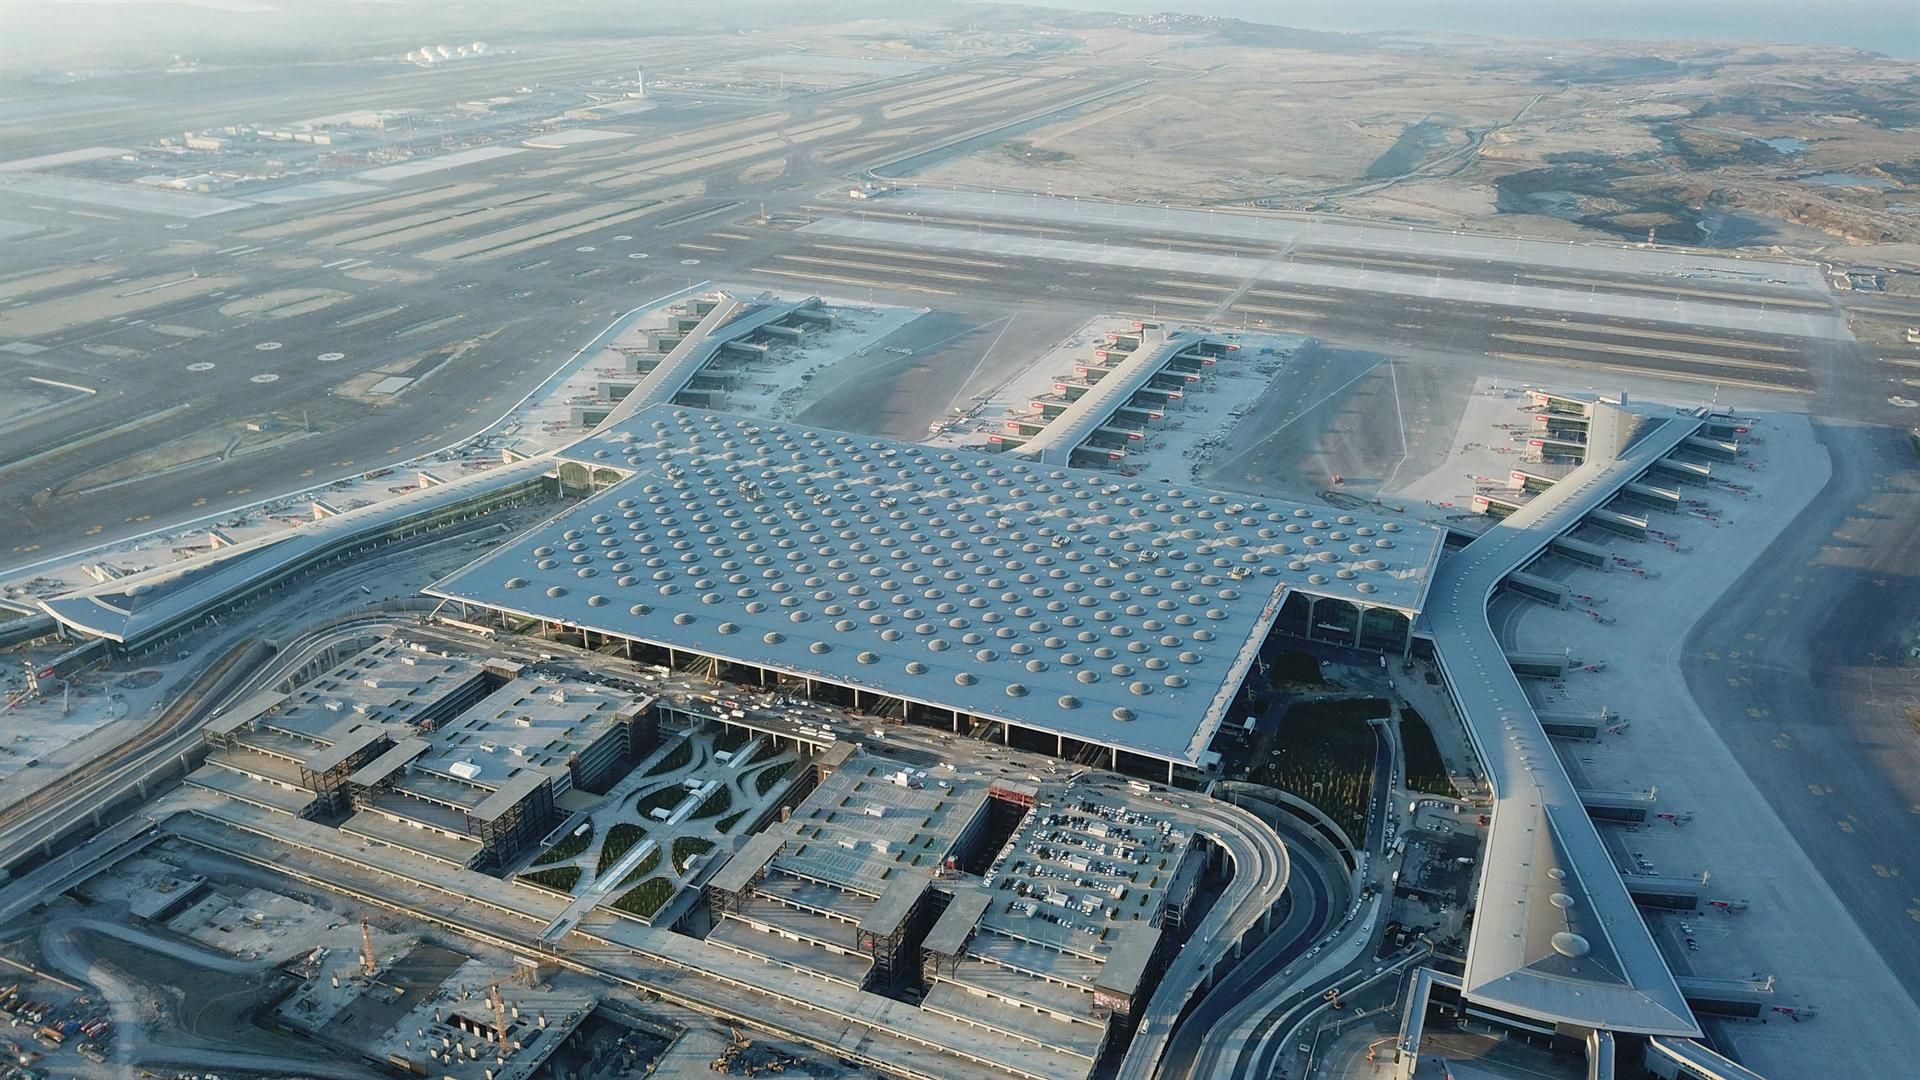 Istanbul New Airport Latest Pictures And Discussion Thread Page 6 Airliners Net In 2021 Istanbul New Airport Istanbul Airport Airport Design